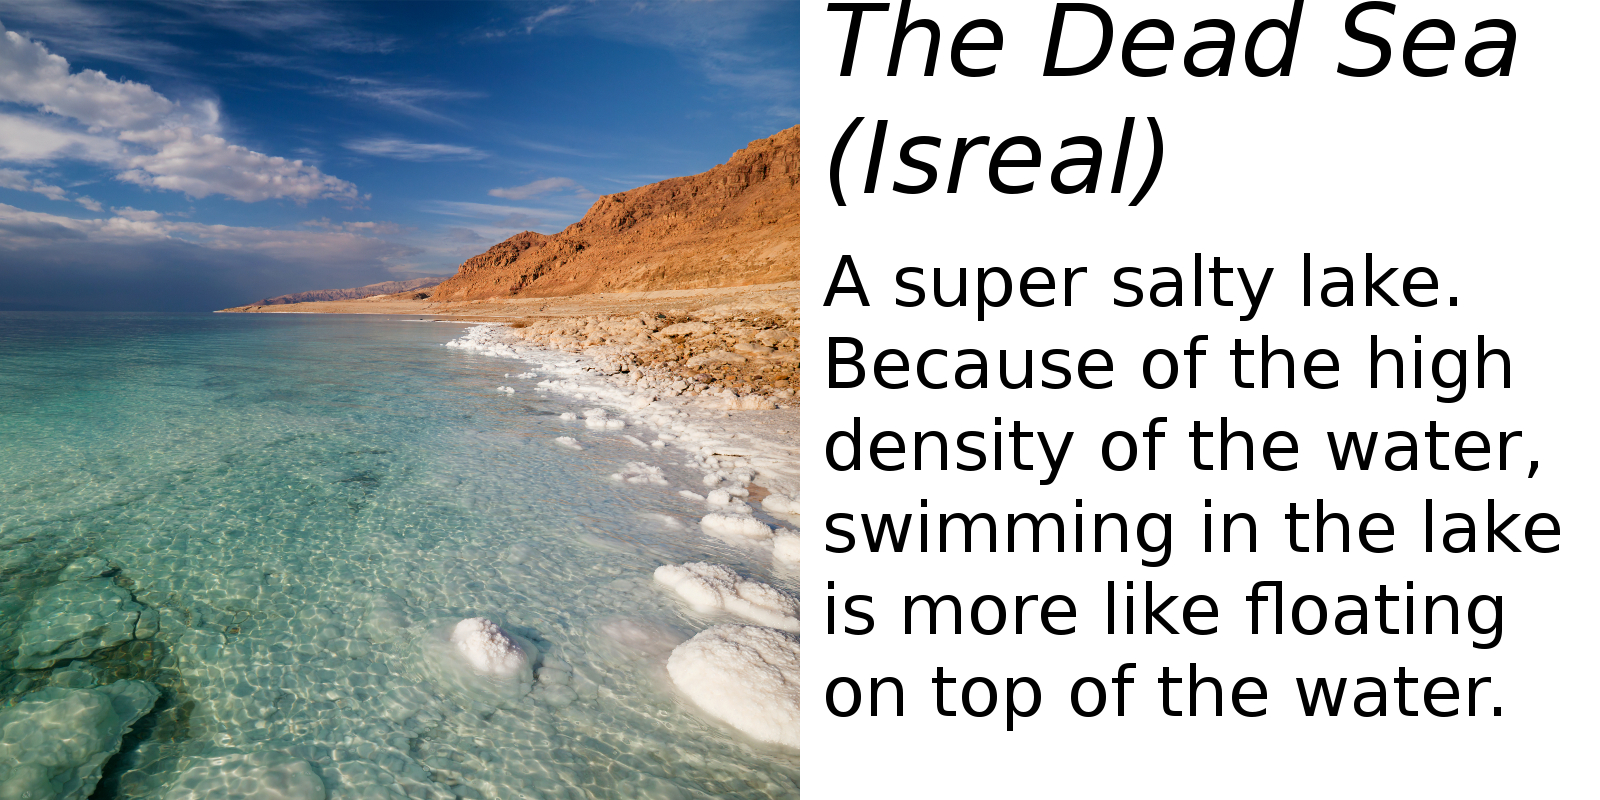 The Dead Sea, Isreal (description) #2